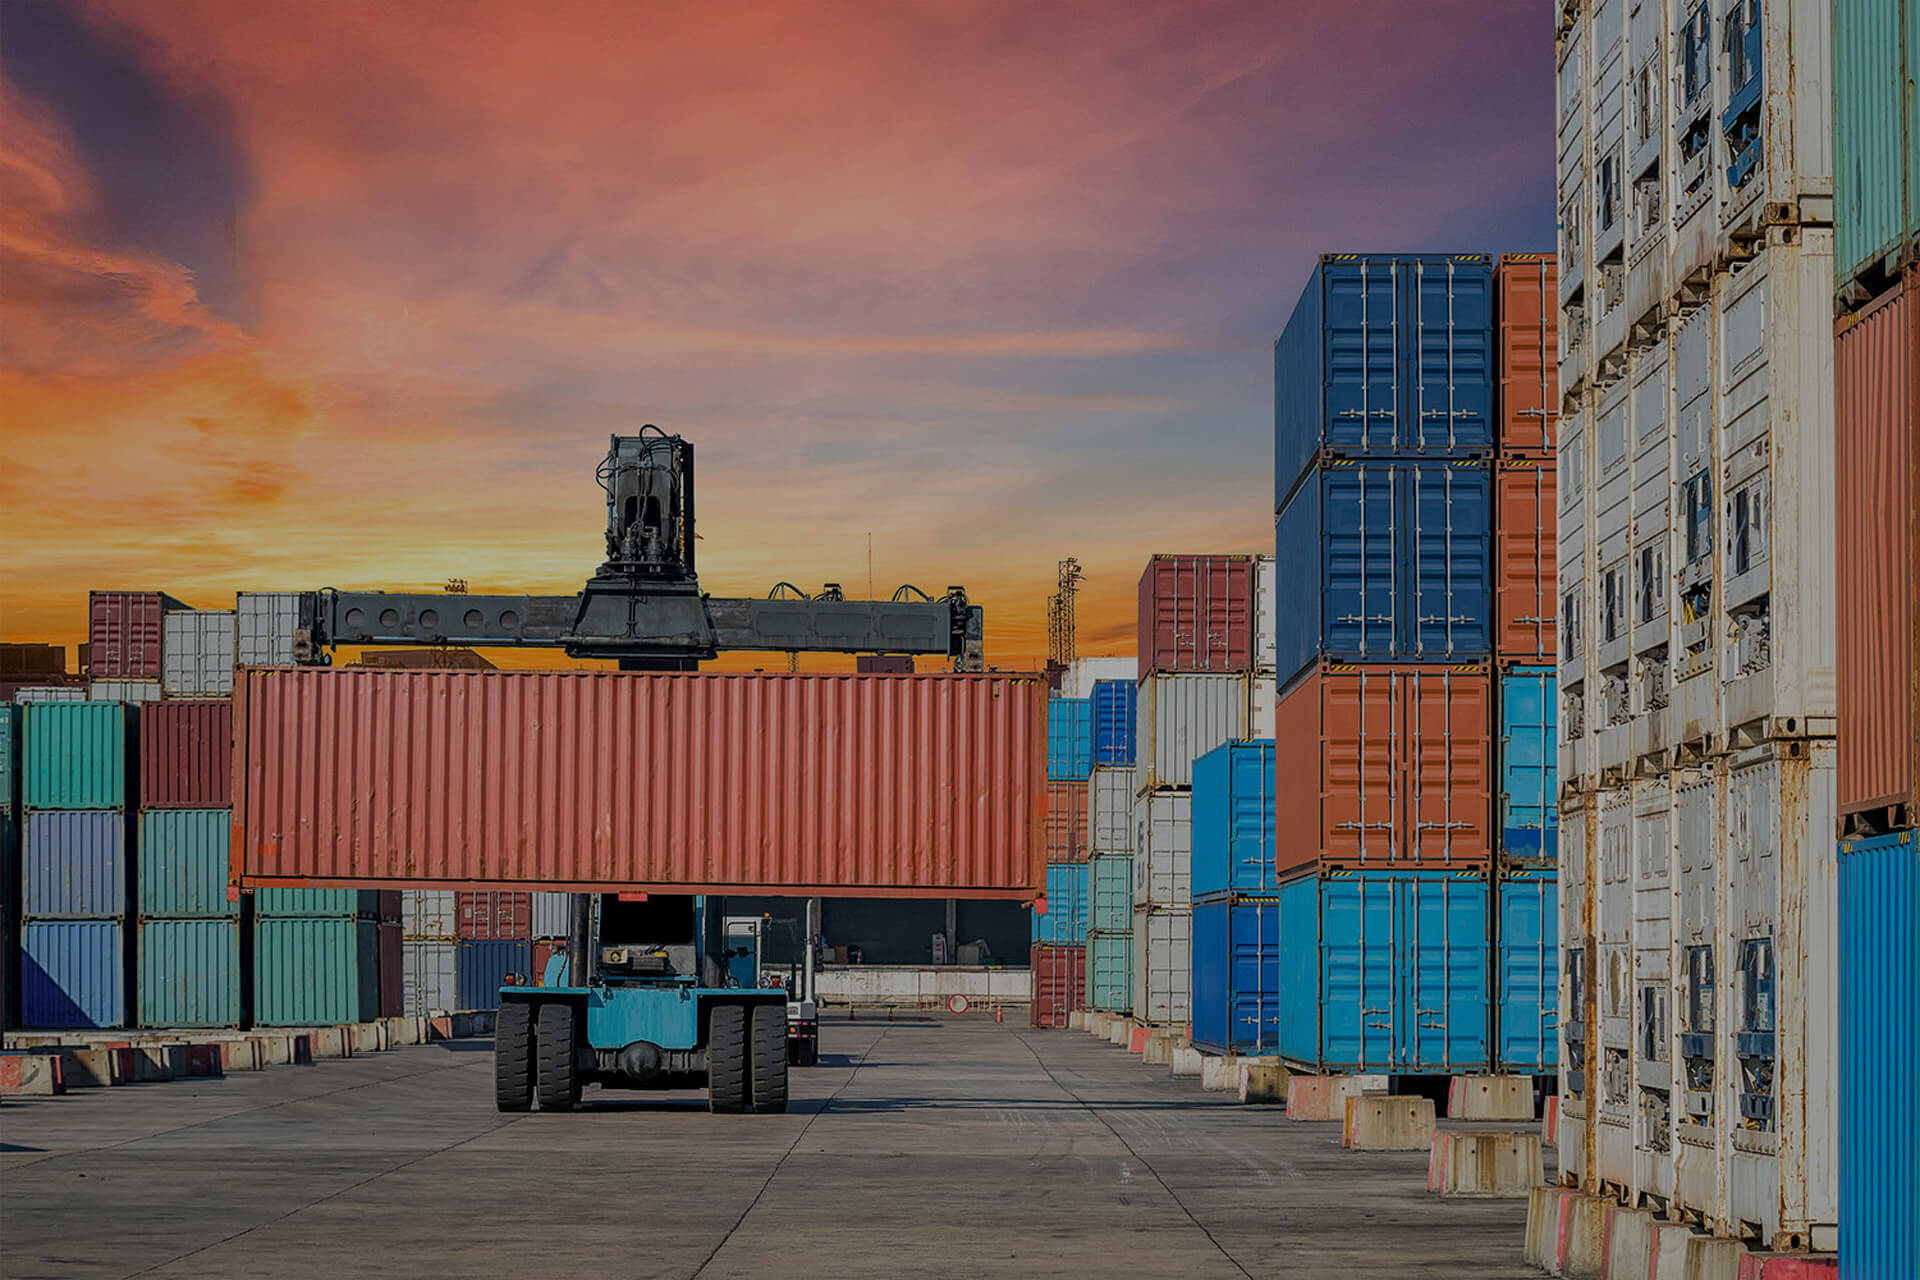 transporting cargo containers at a shipping yard